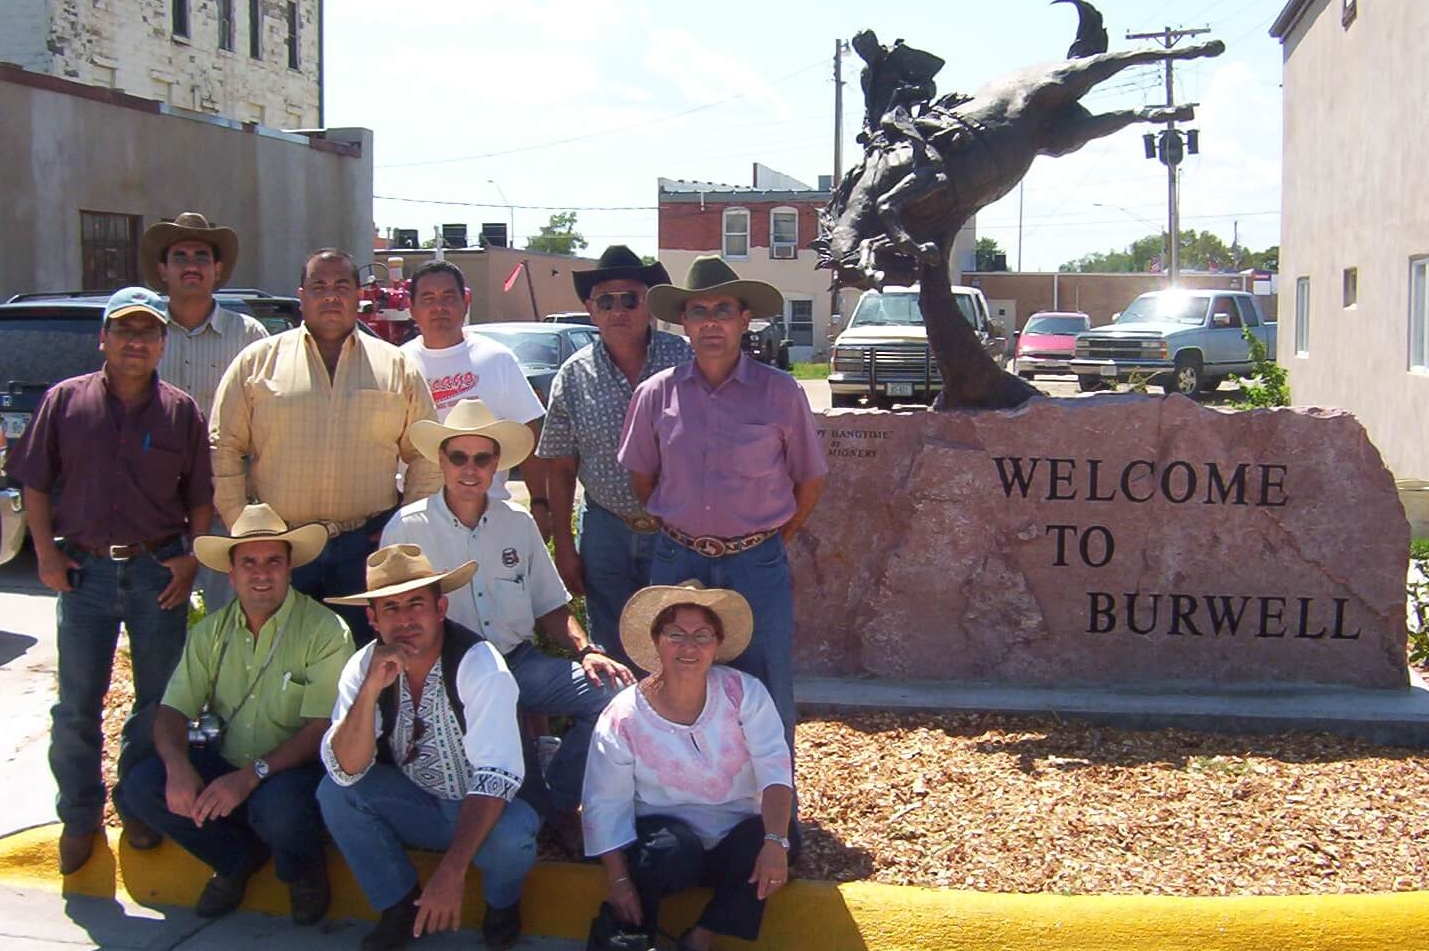 Cesar took this picture of the Guatemala team that visited Burwell, Nebraska in the summer of 2006. Note that Oscar is seated on the curb in the middle. His cousin Alex is in the green shirt next to him. Elba, Cesar's wife, is seated on the right. Rolando is second from the top right.